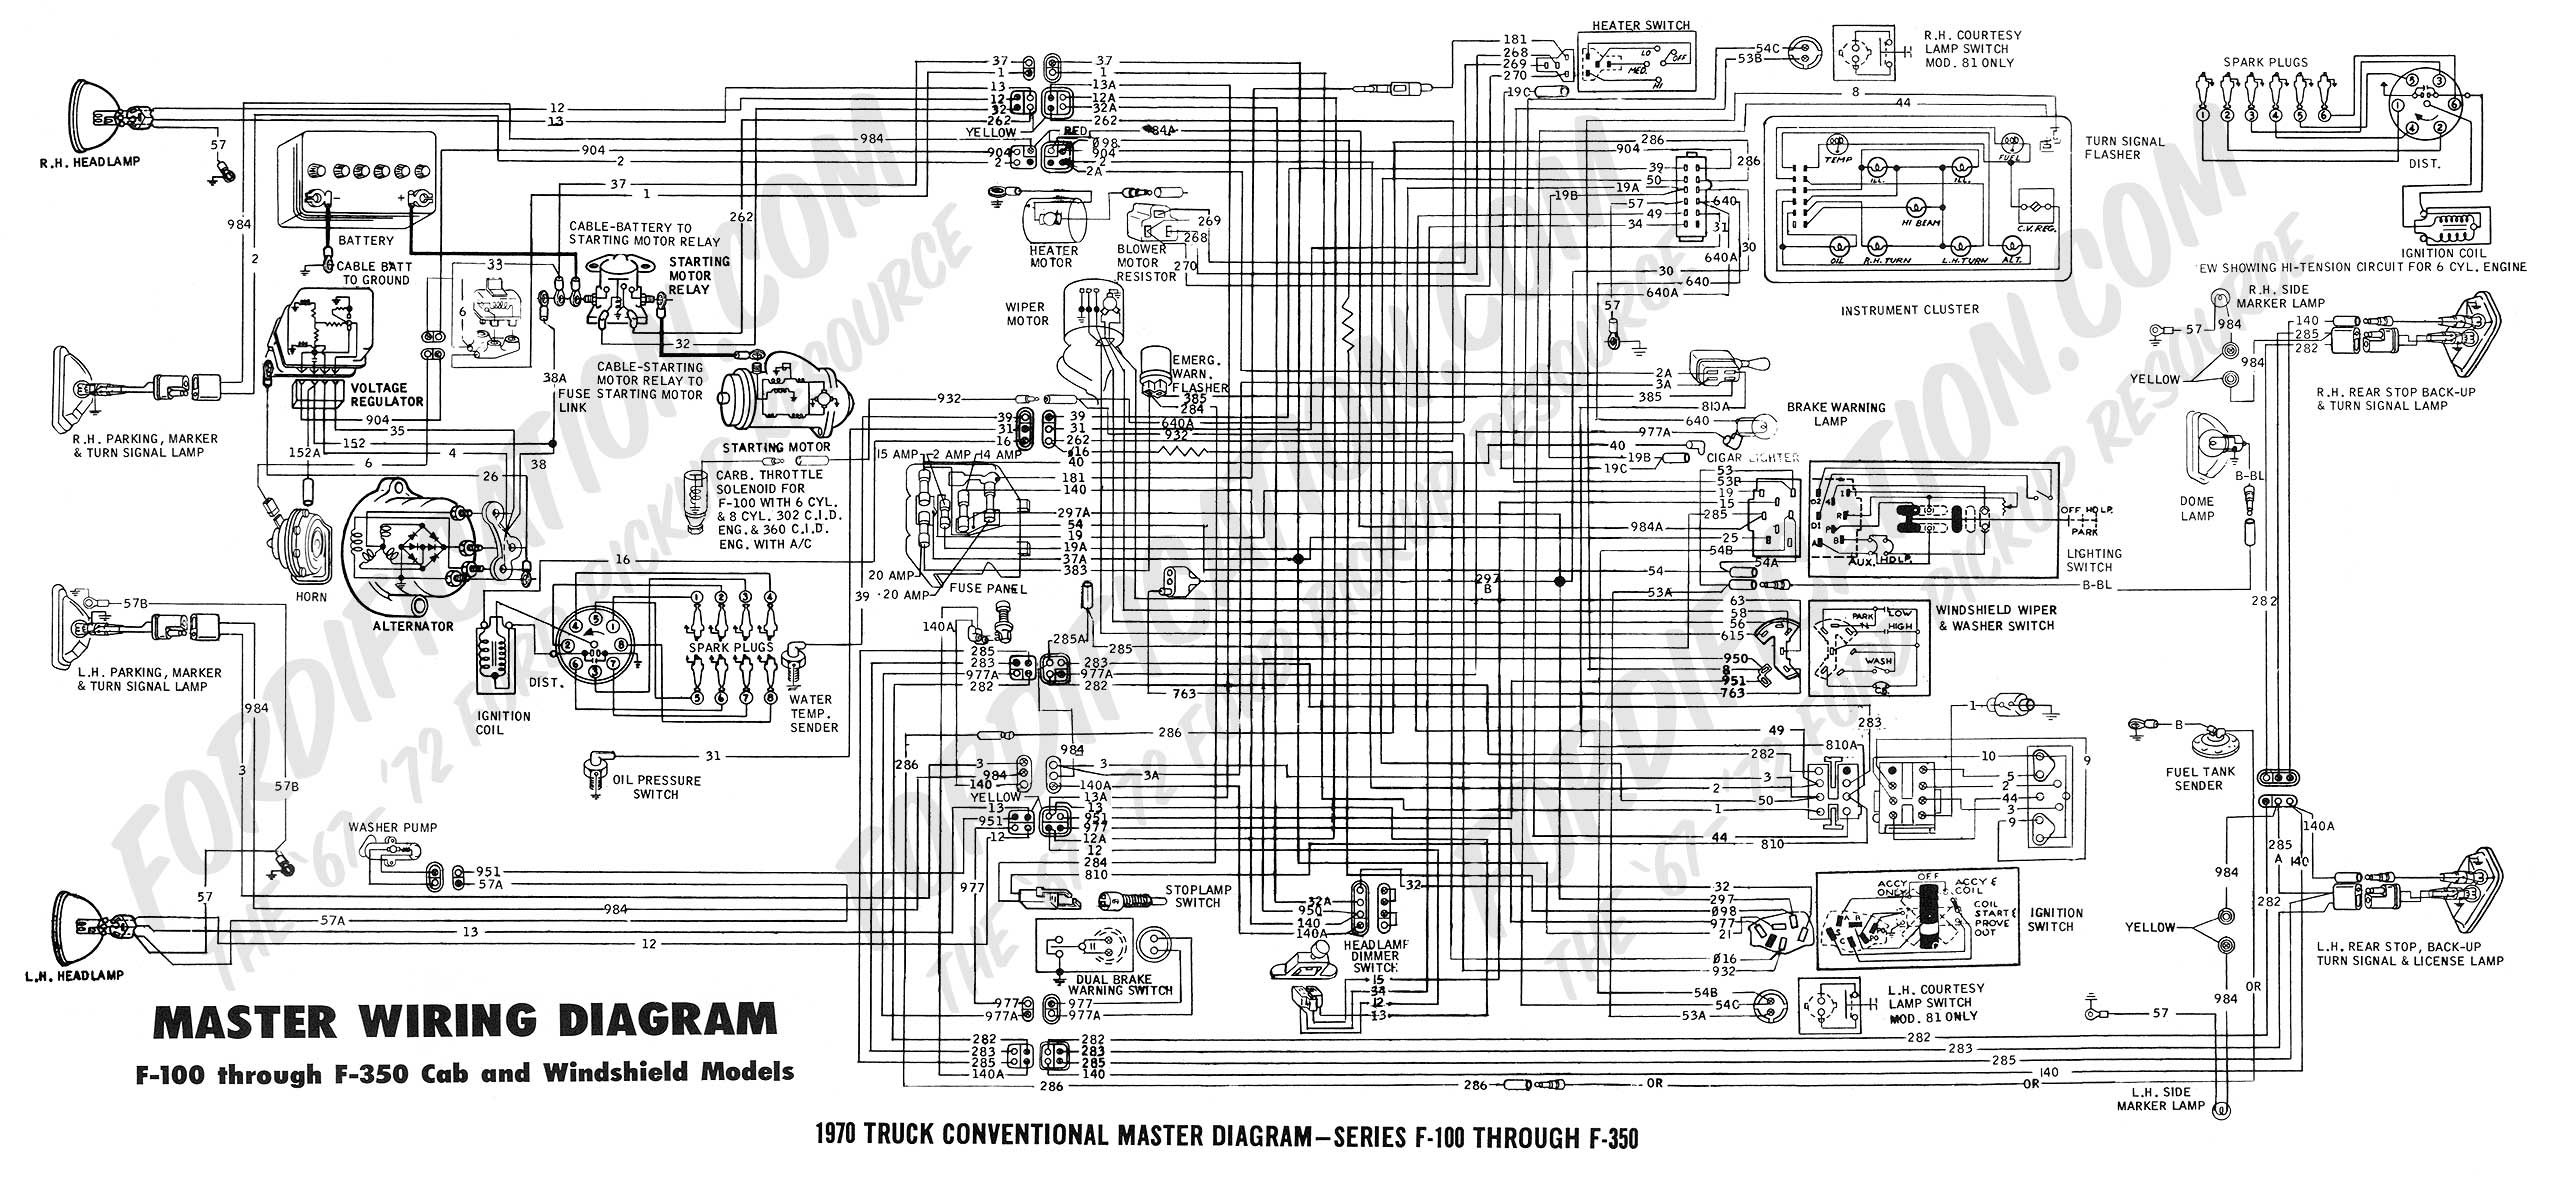 ford truck technical drawings and schematics section h wiring rh fordification com Ford Super Duty Wiring Diagram ford f350 wiring diagram 1968